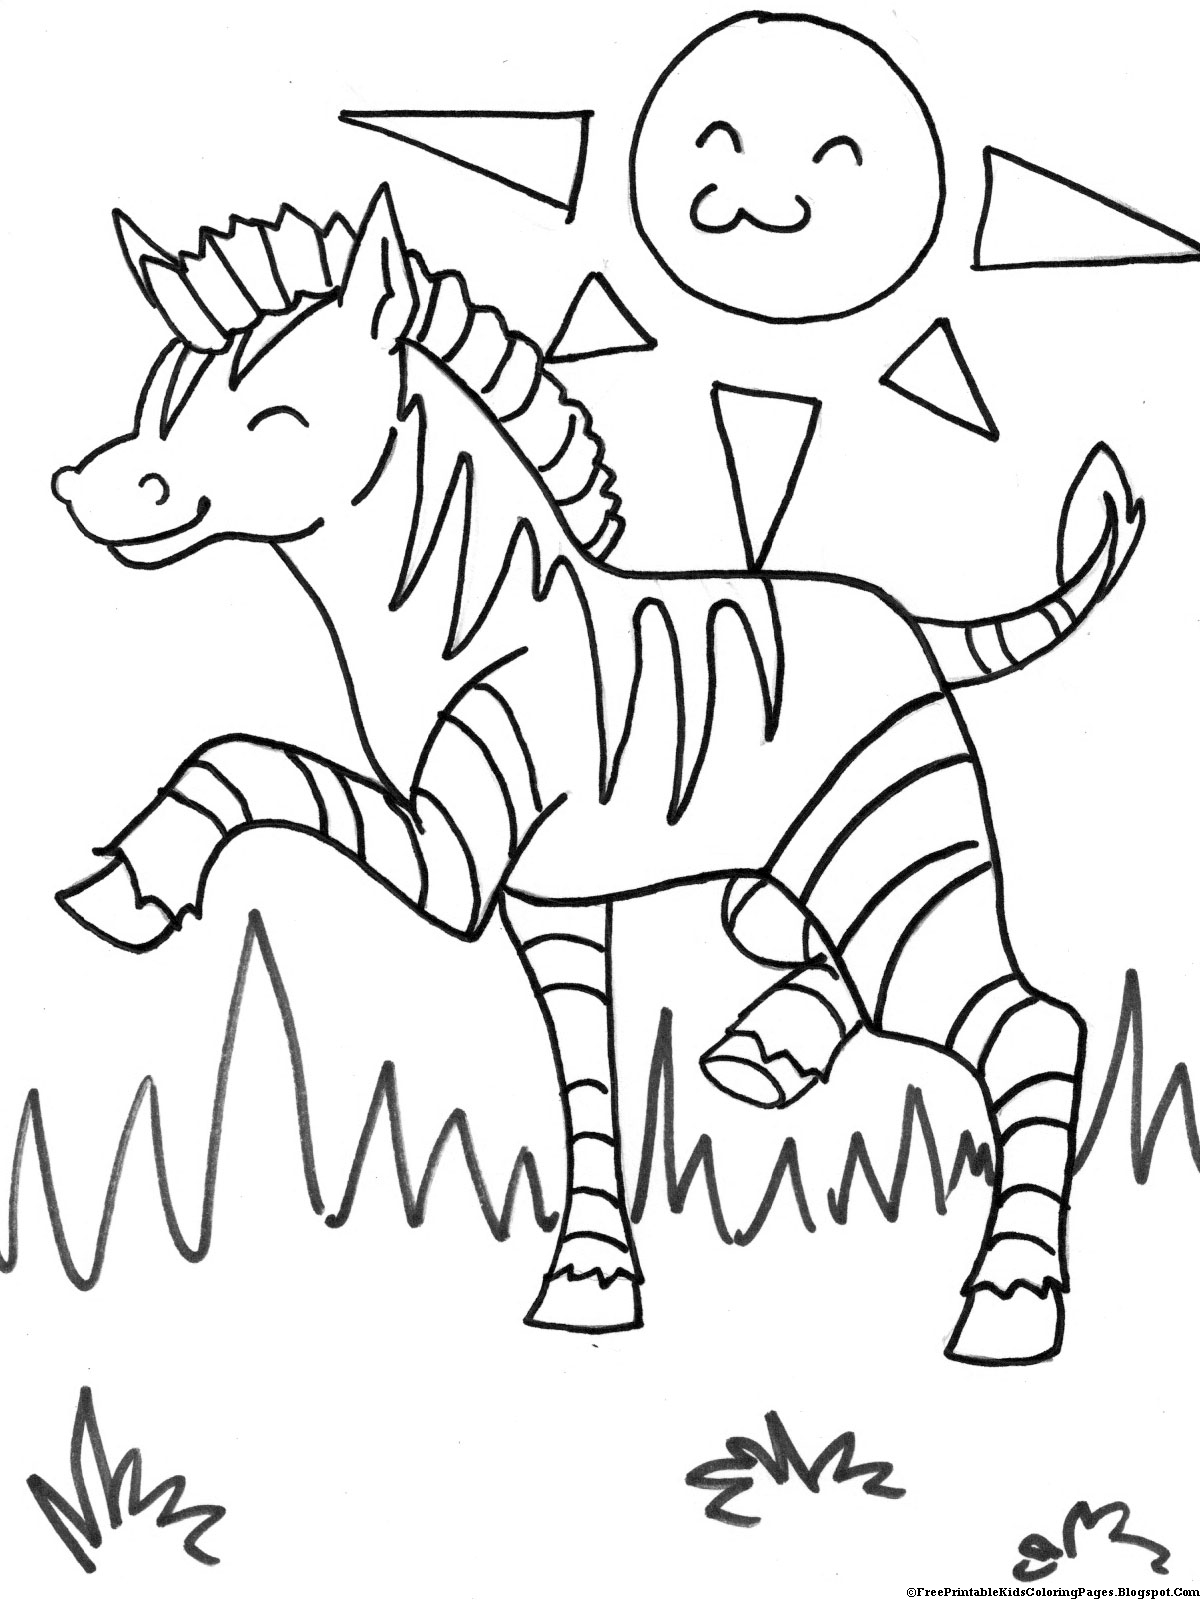 coloring kids pages free printable tangled coloring pages for kids kids coloring pages